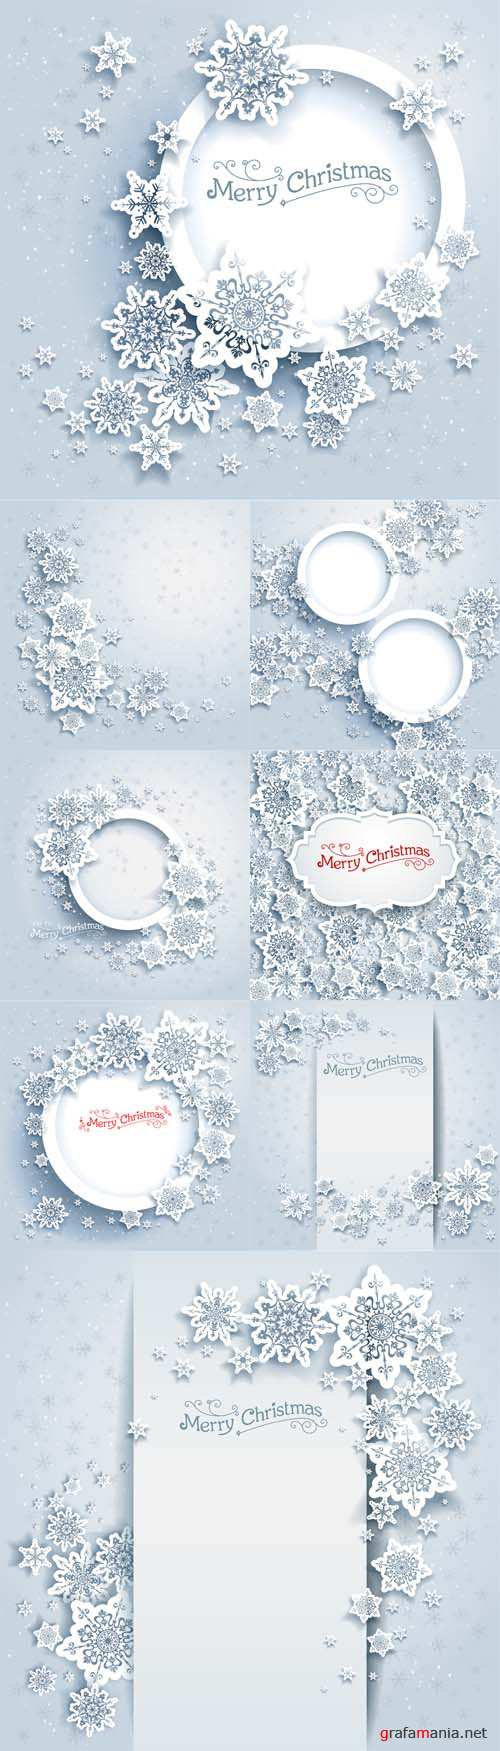 Vector Set - Christmas frame on snow background with snowflakes